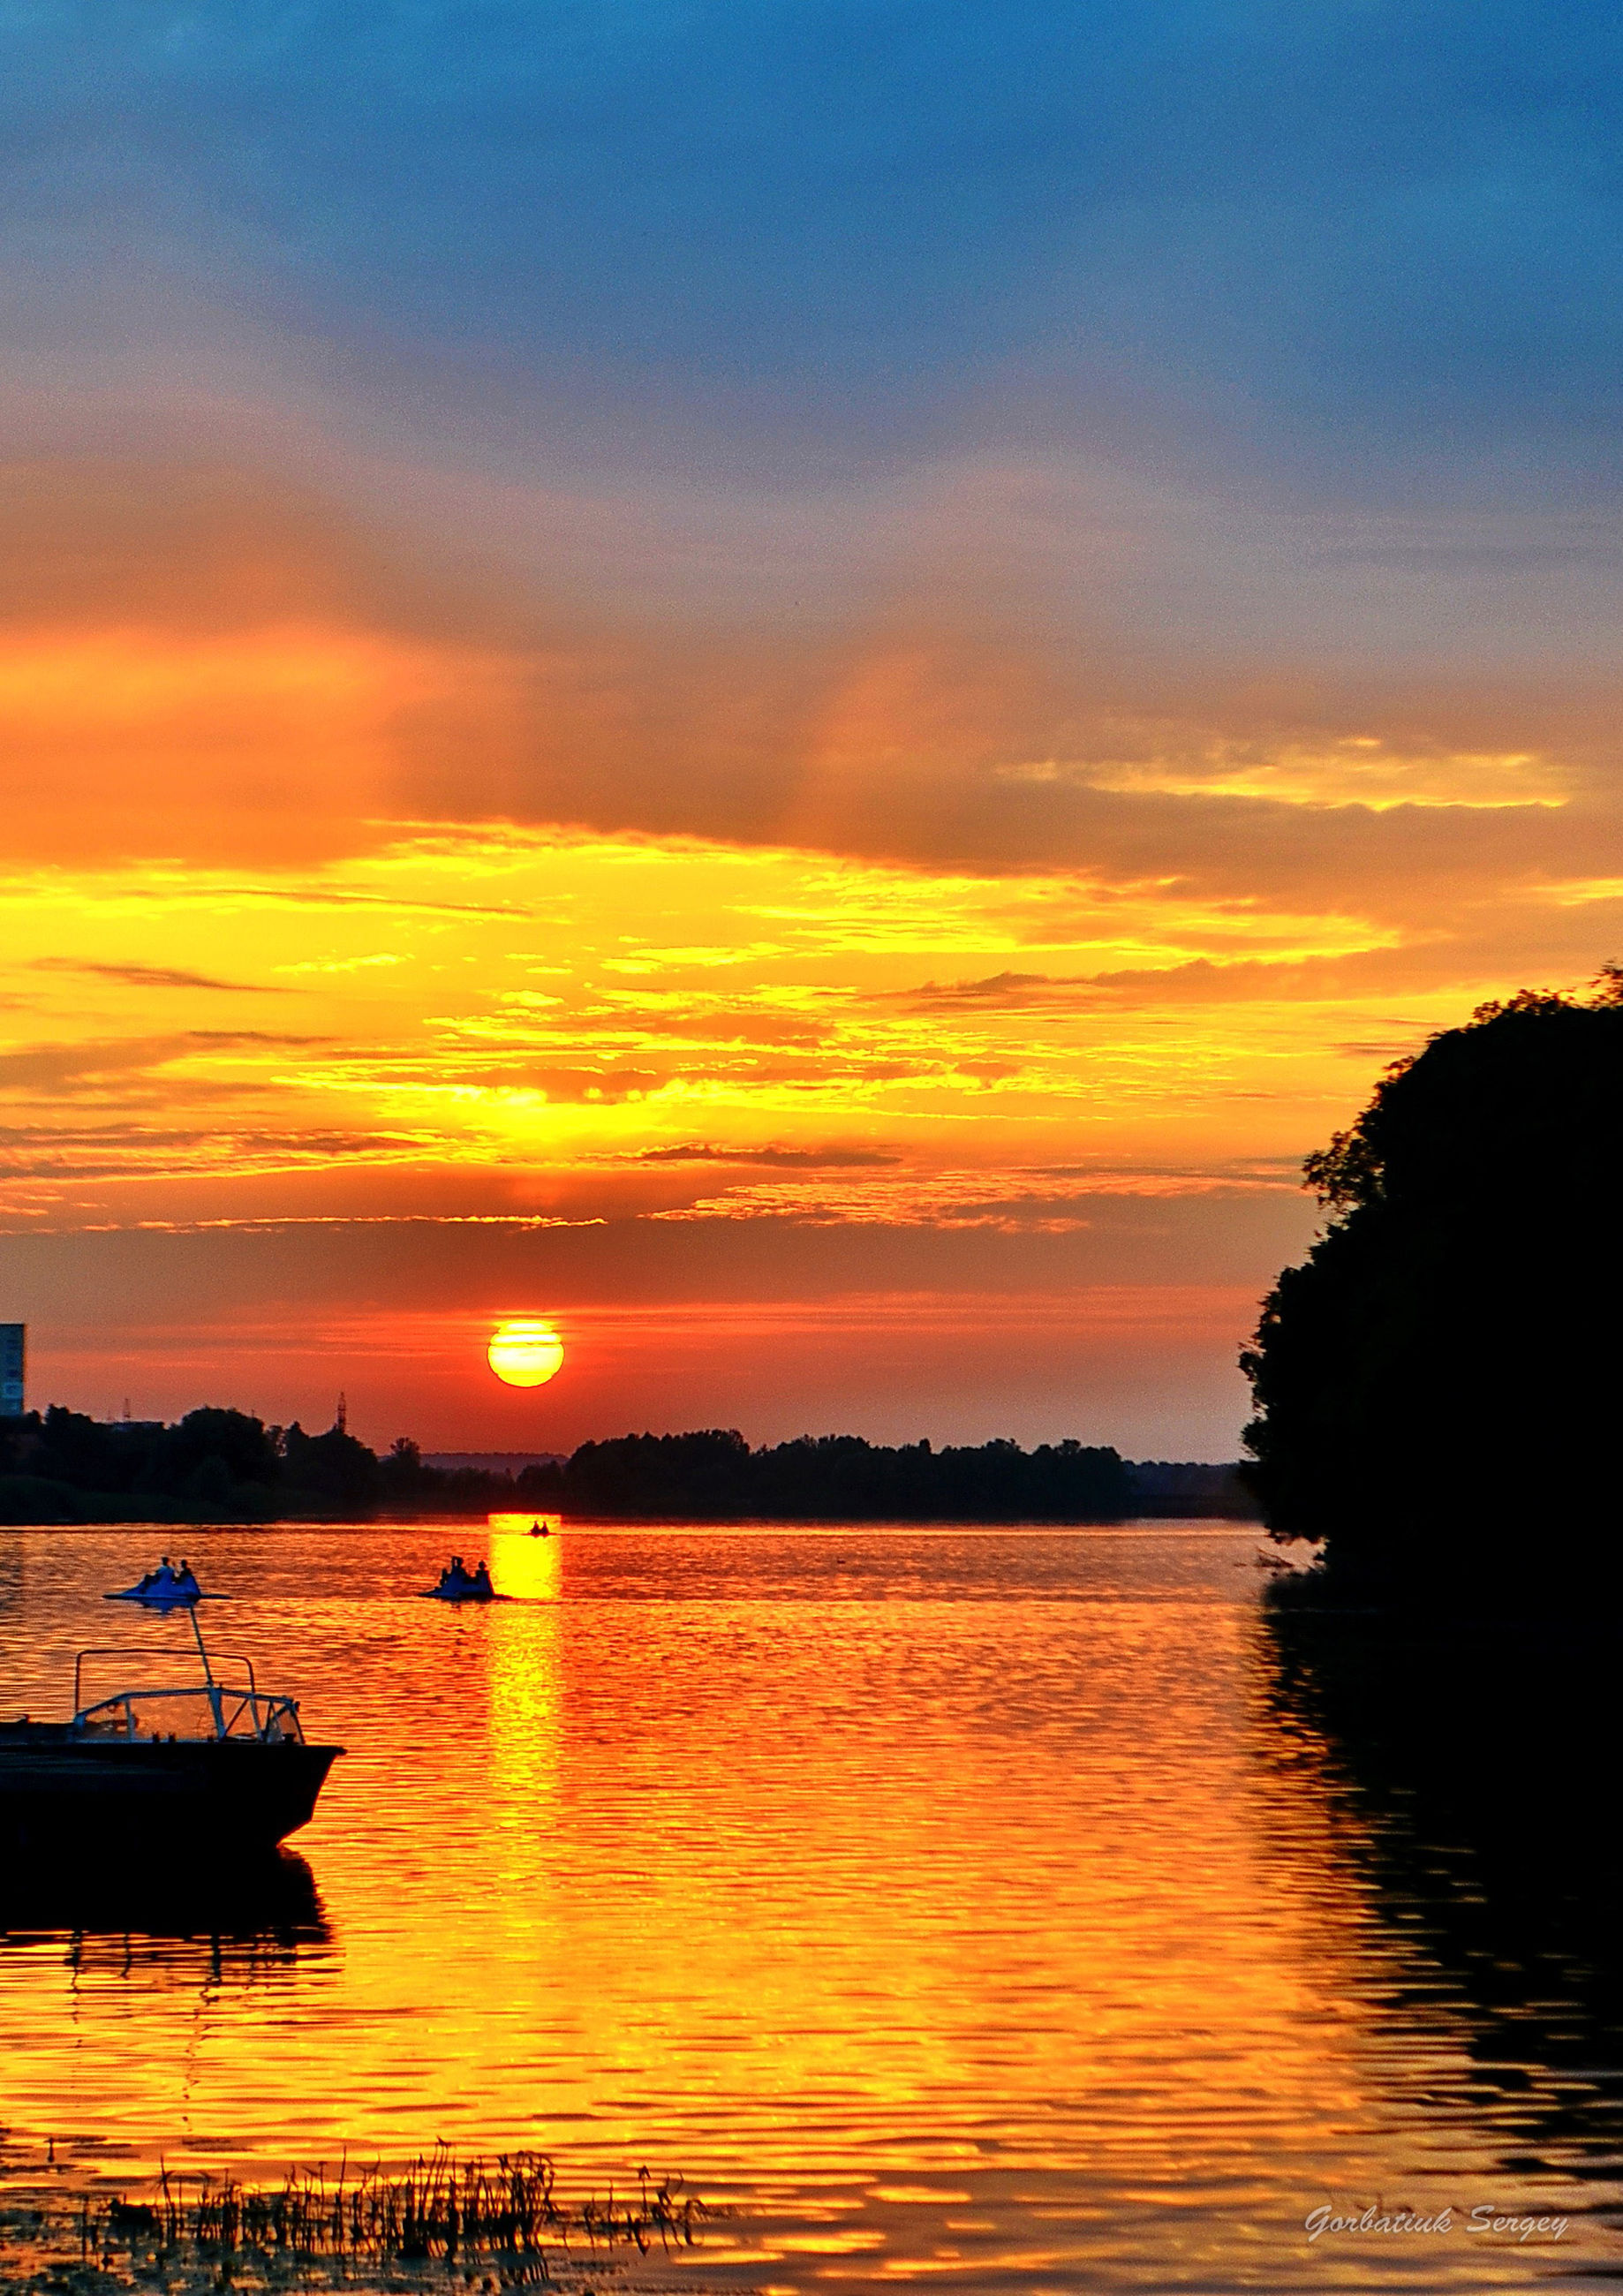 sunset, water, scenics, orange color, tranquil scene, sky, beauty in nature, tranquility, silhouette, sea, idyllic, reflection, nature, waterfront, cloud - sky, sun, nautical vessel, cloud, dramatic sky, moody sky